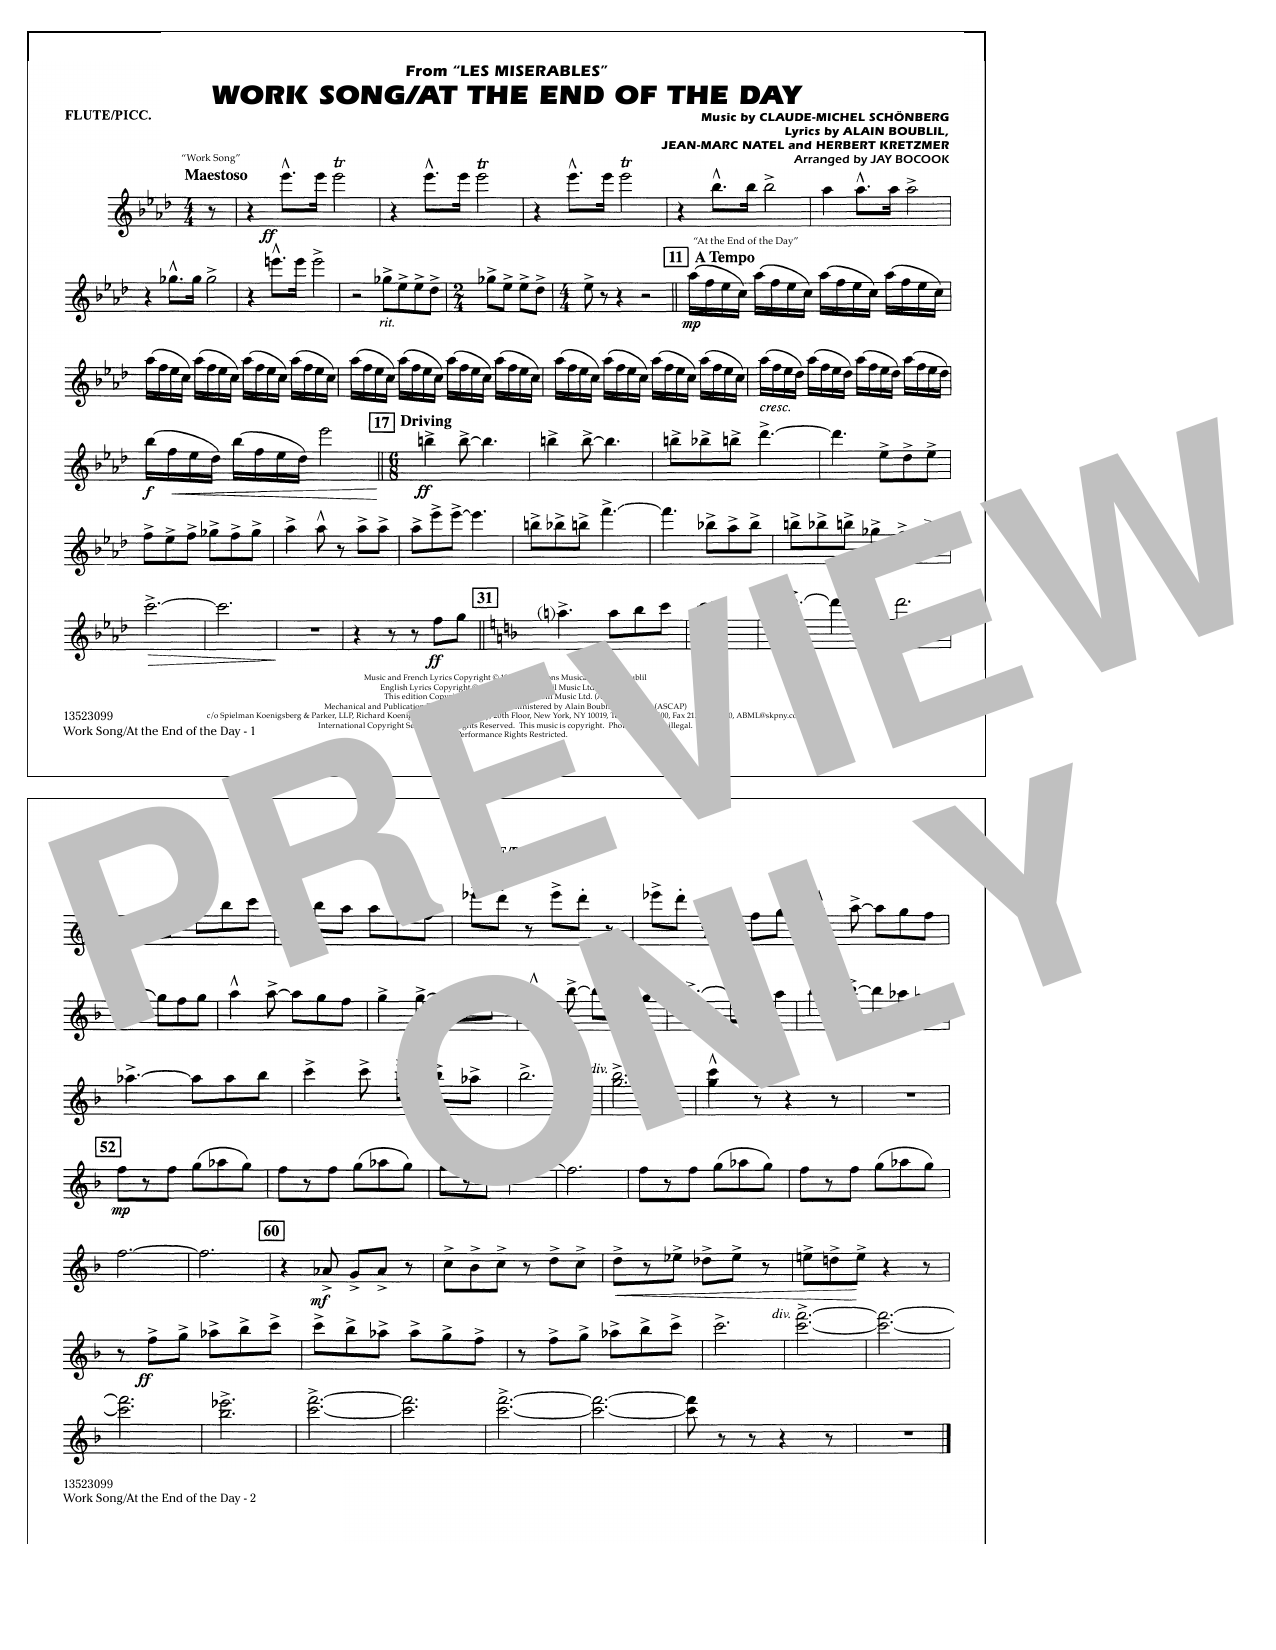 Work Song/At the End of the Day (Les Misérables) (arr. Jay Bocook) - Flute/Piccolo (Marching Band)